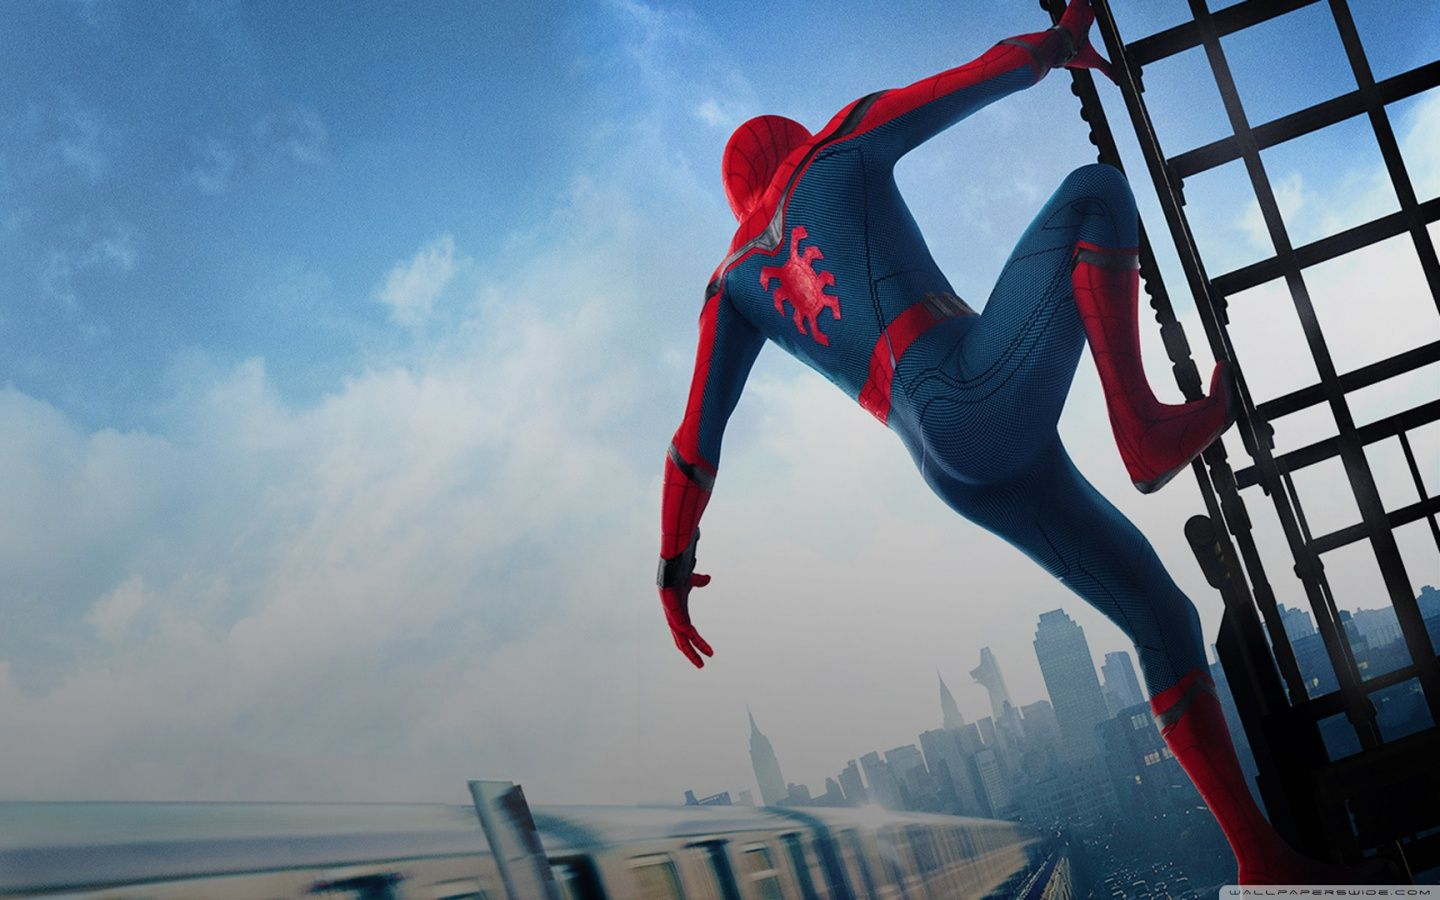 Spiderman Wallpaper Desktop Background Firefox Wallpaper Free Download Wallpapers Desktop Spiderman Spiderman Homecoming Avengers Wallpaper